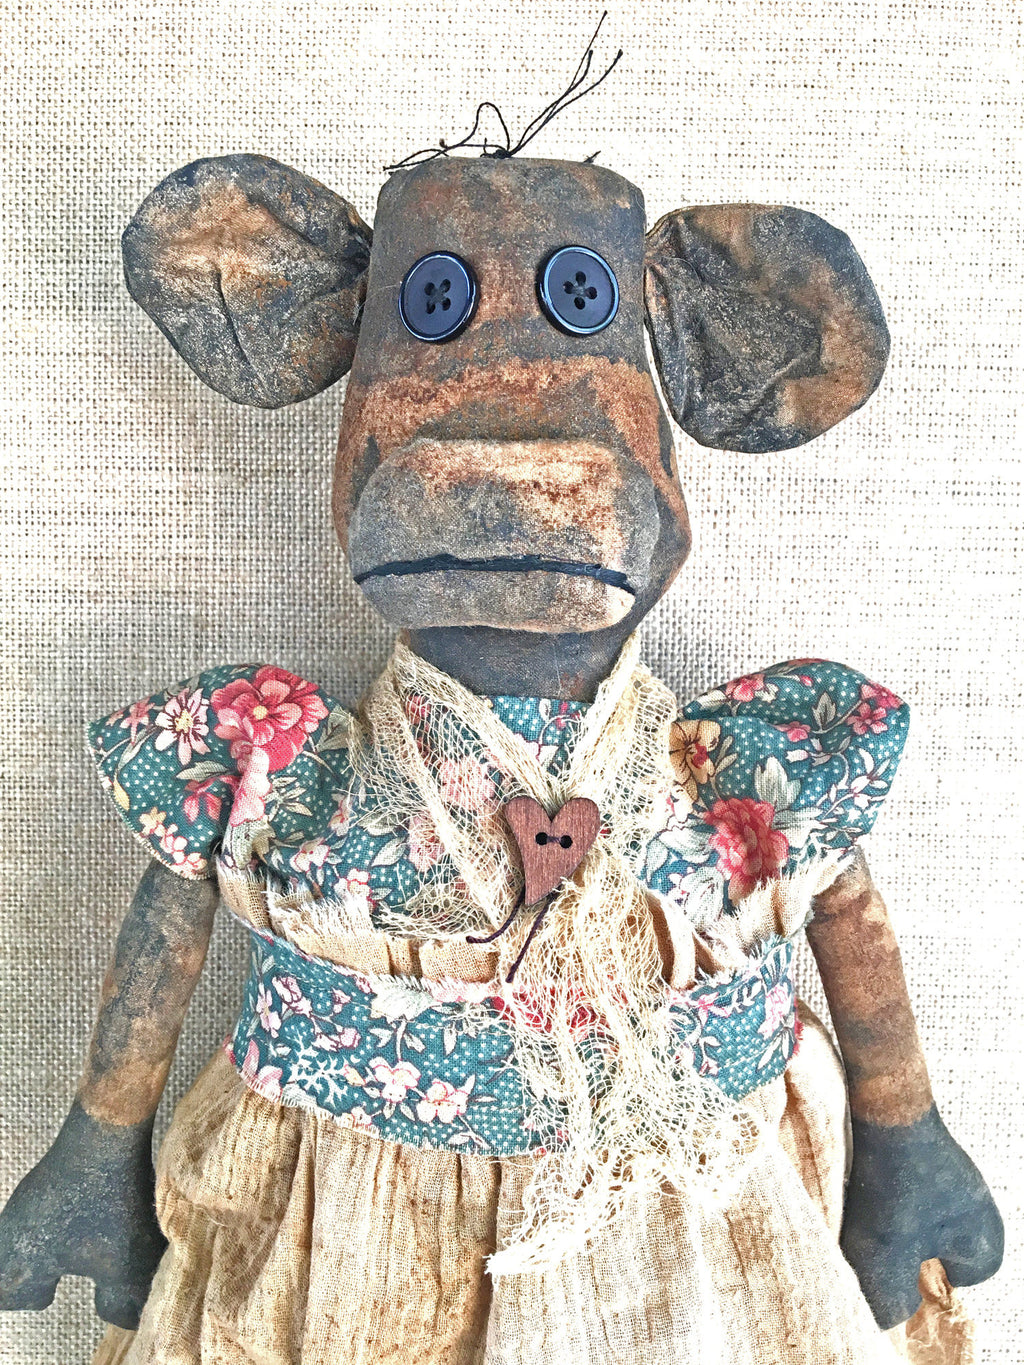 Primitive Folk Art Cow Doll - Primitive Animal Doll